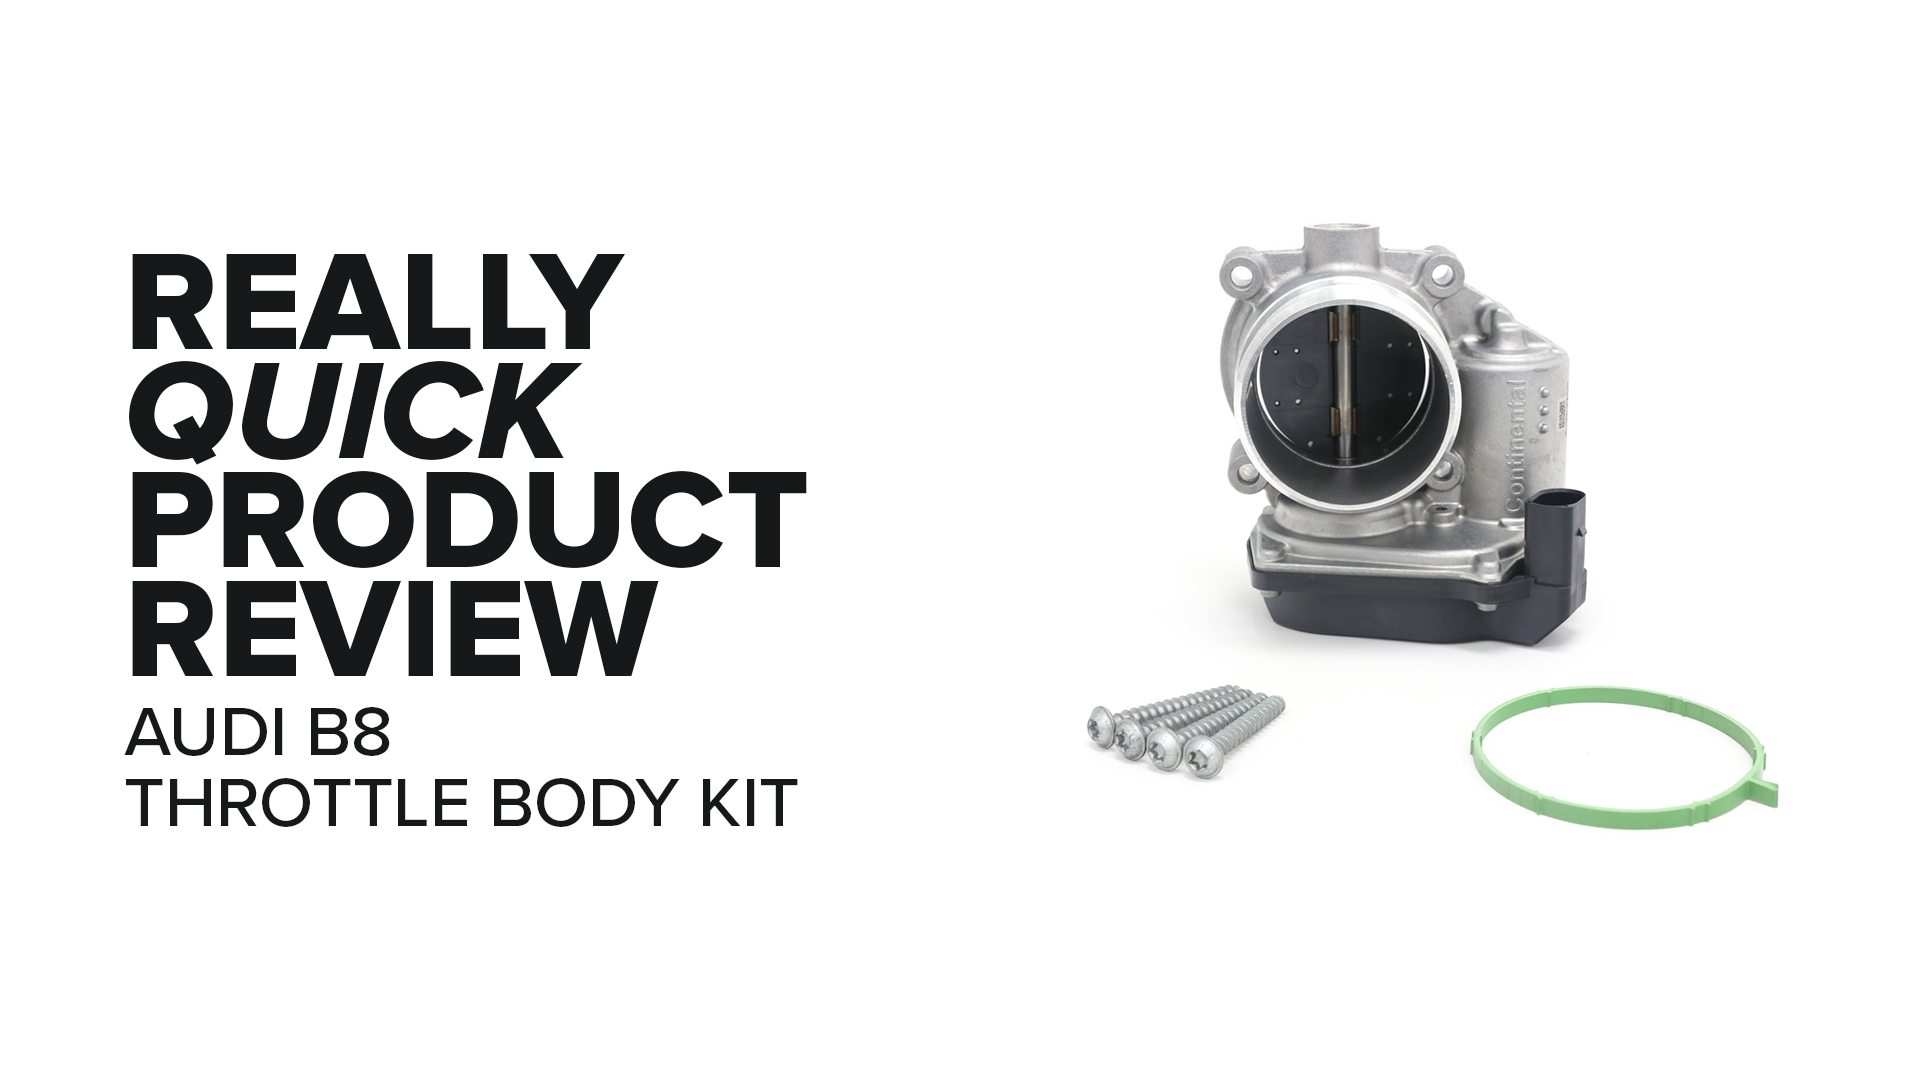 Audi B8 2.0 (A4, Q3, Q5 & More) Throttle Body Kit - Symptoms And Product Review